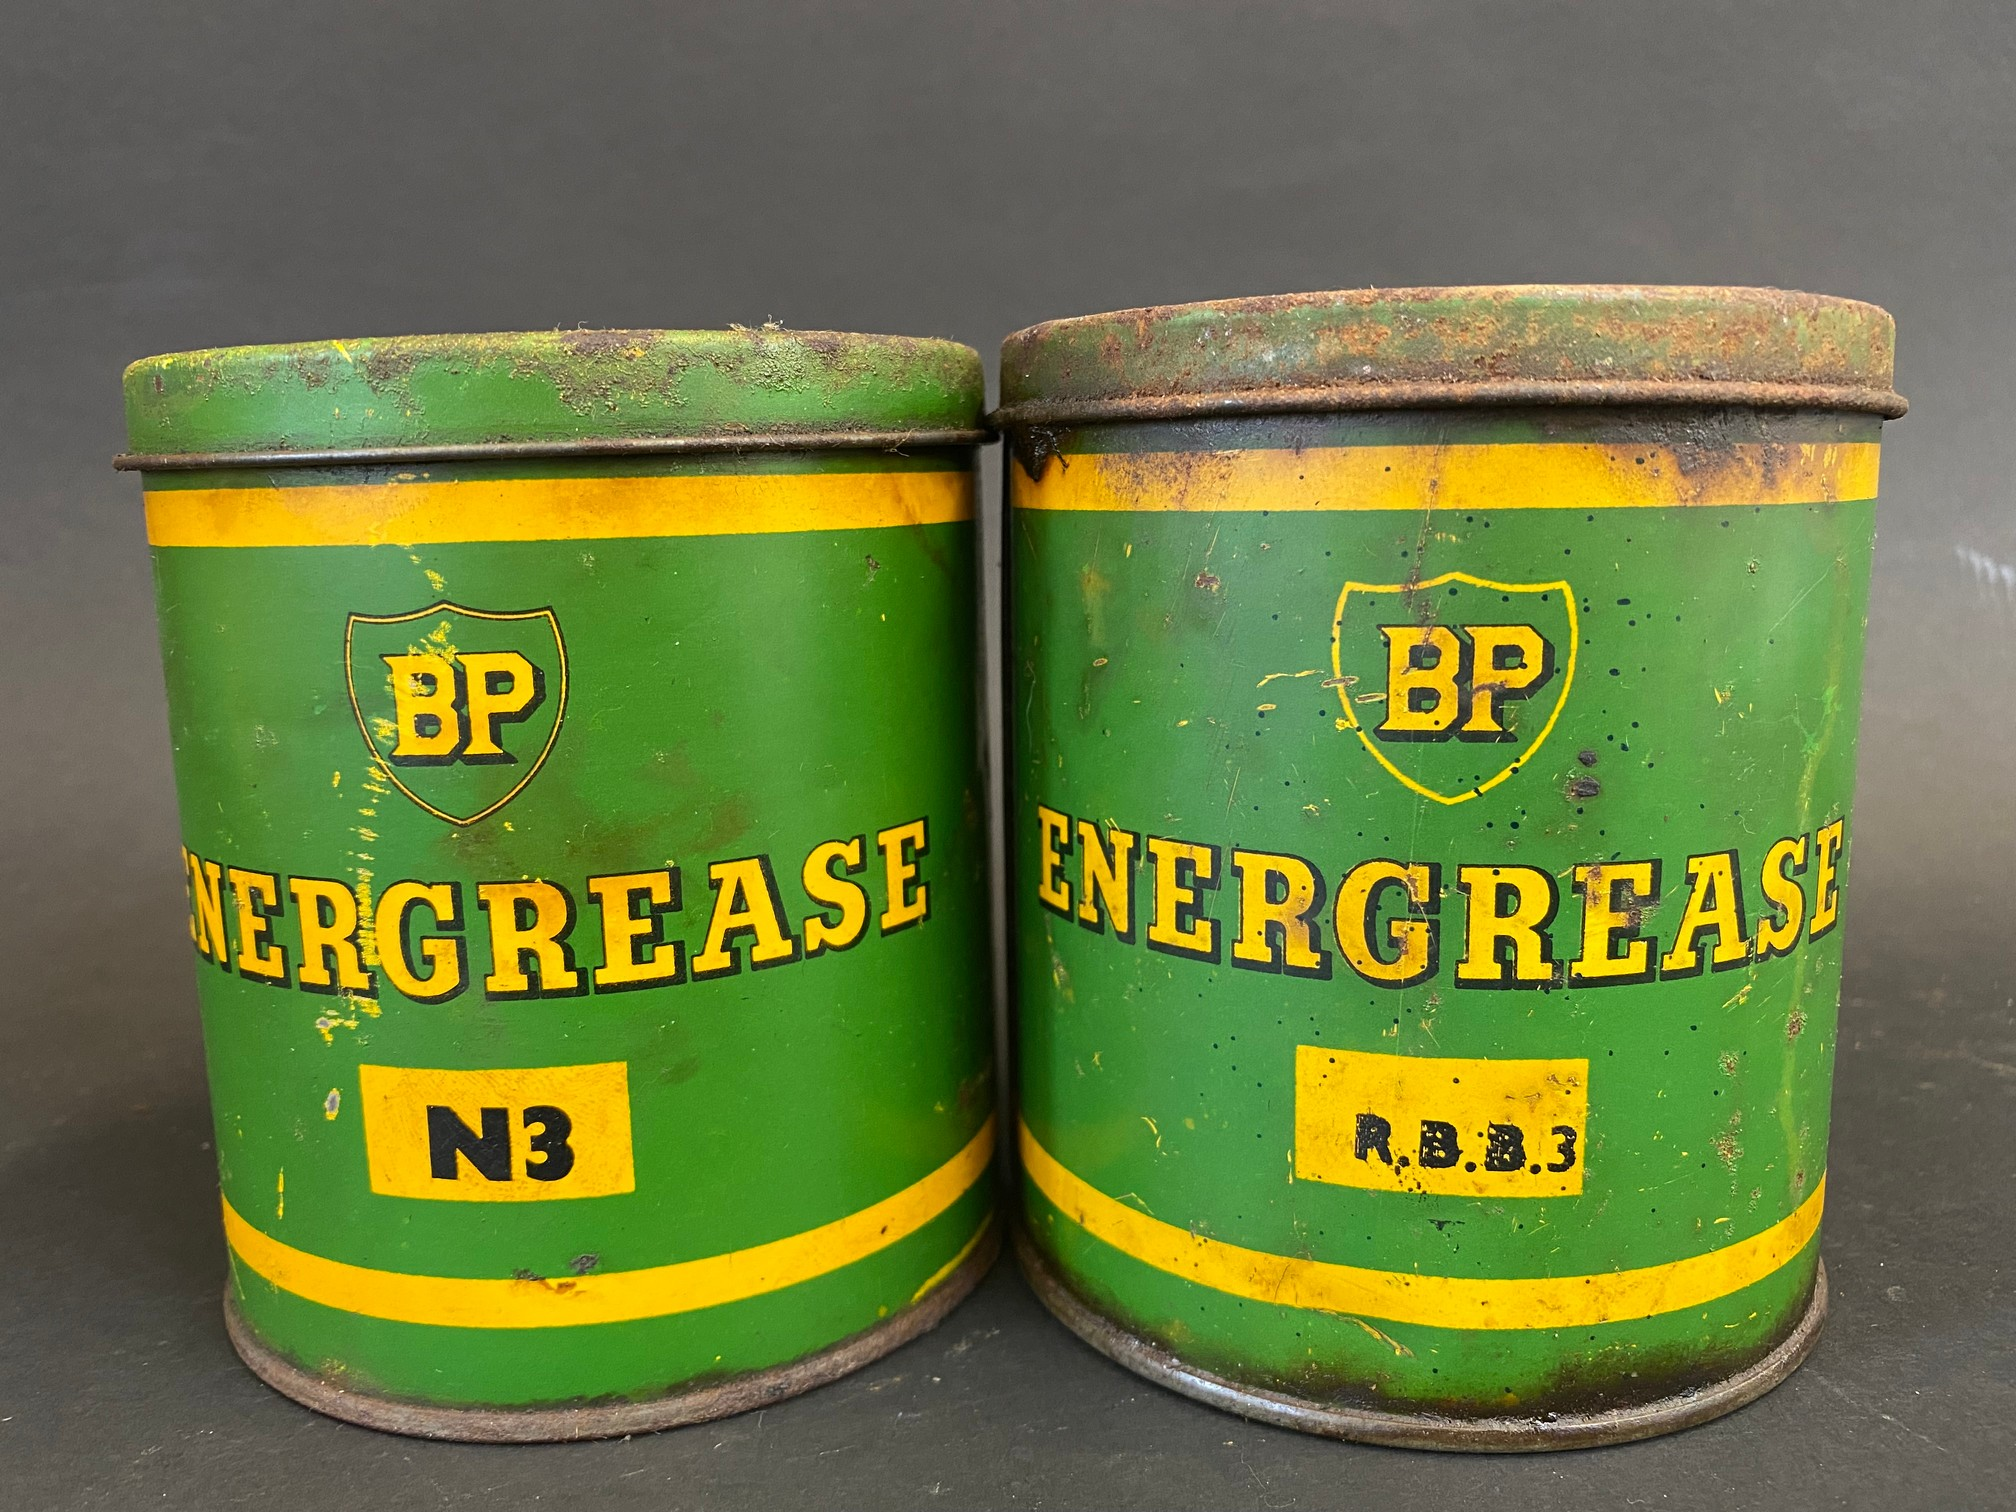 Two BP Energrease tins.